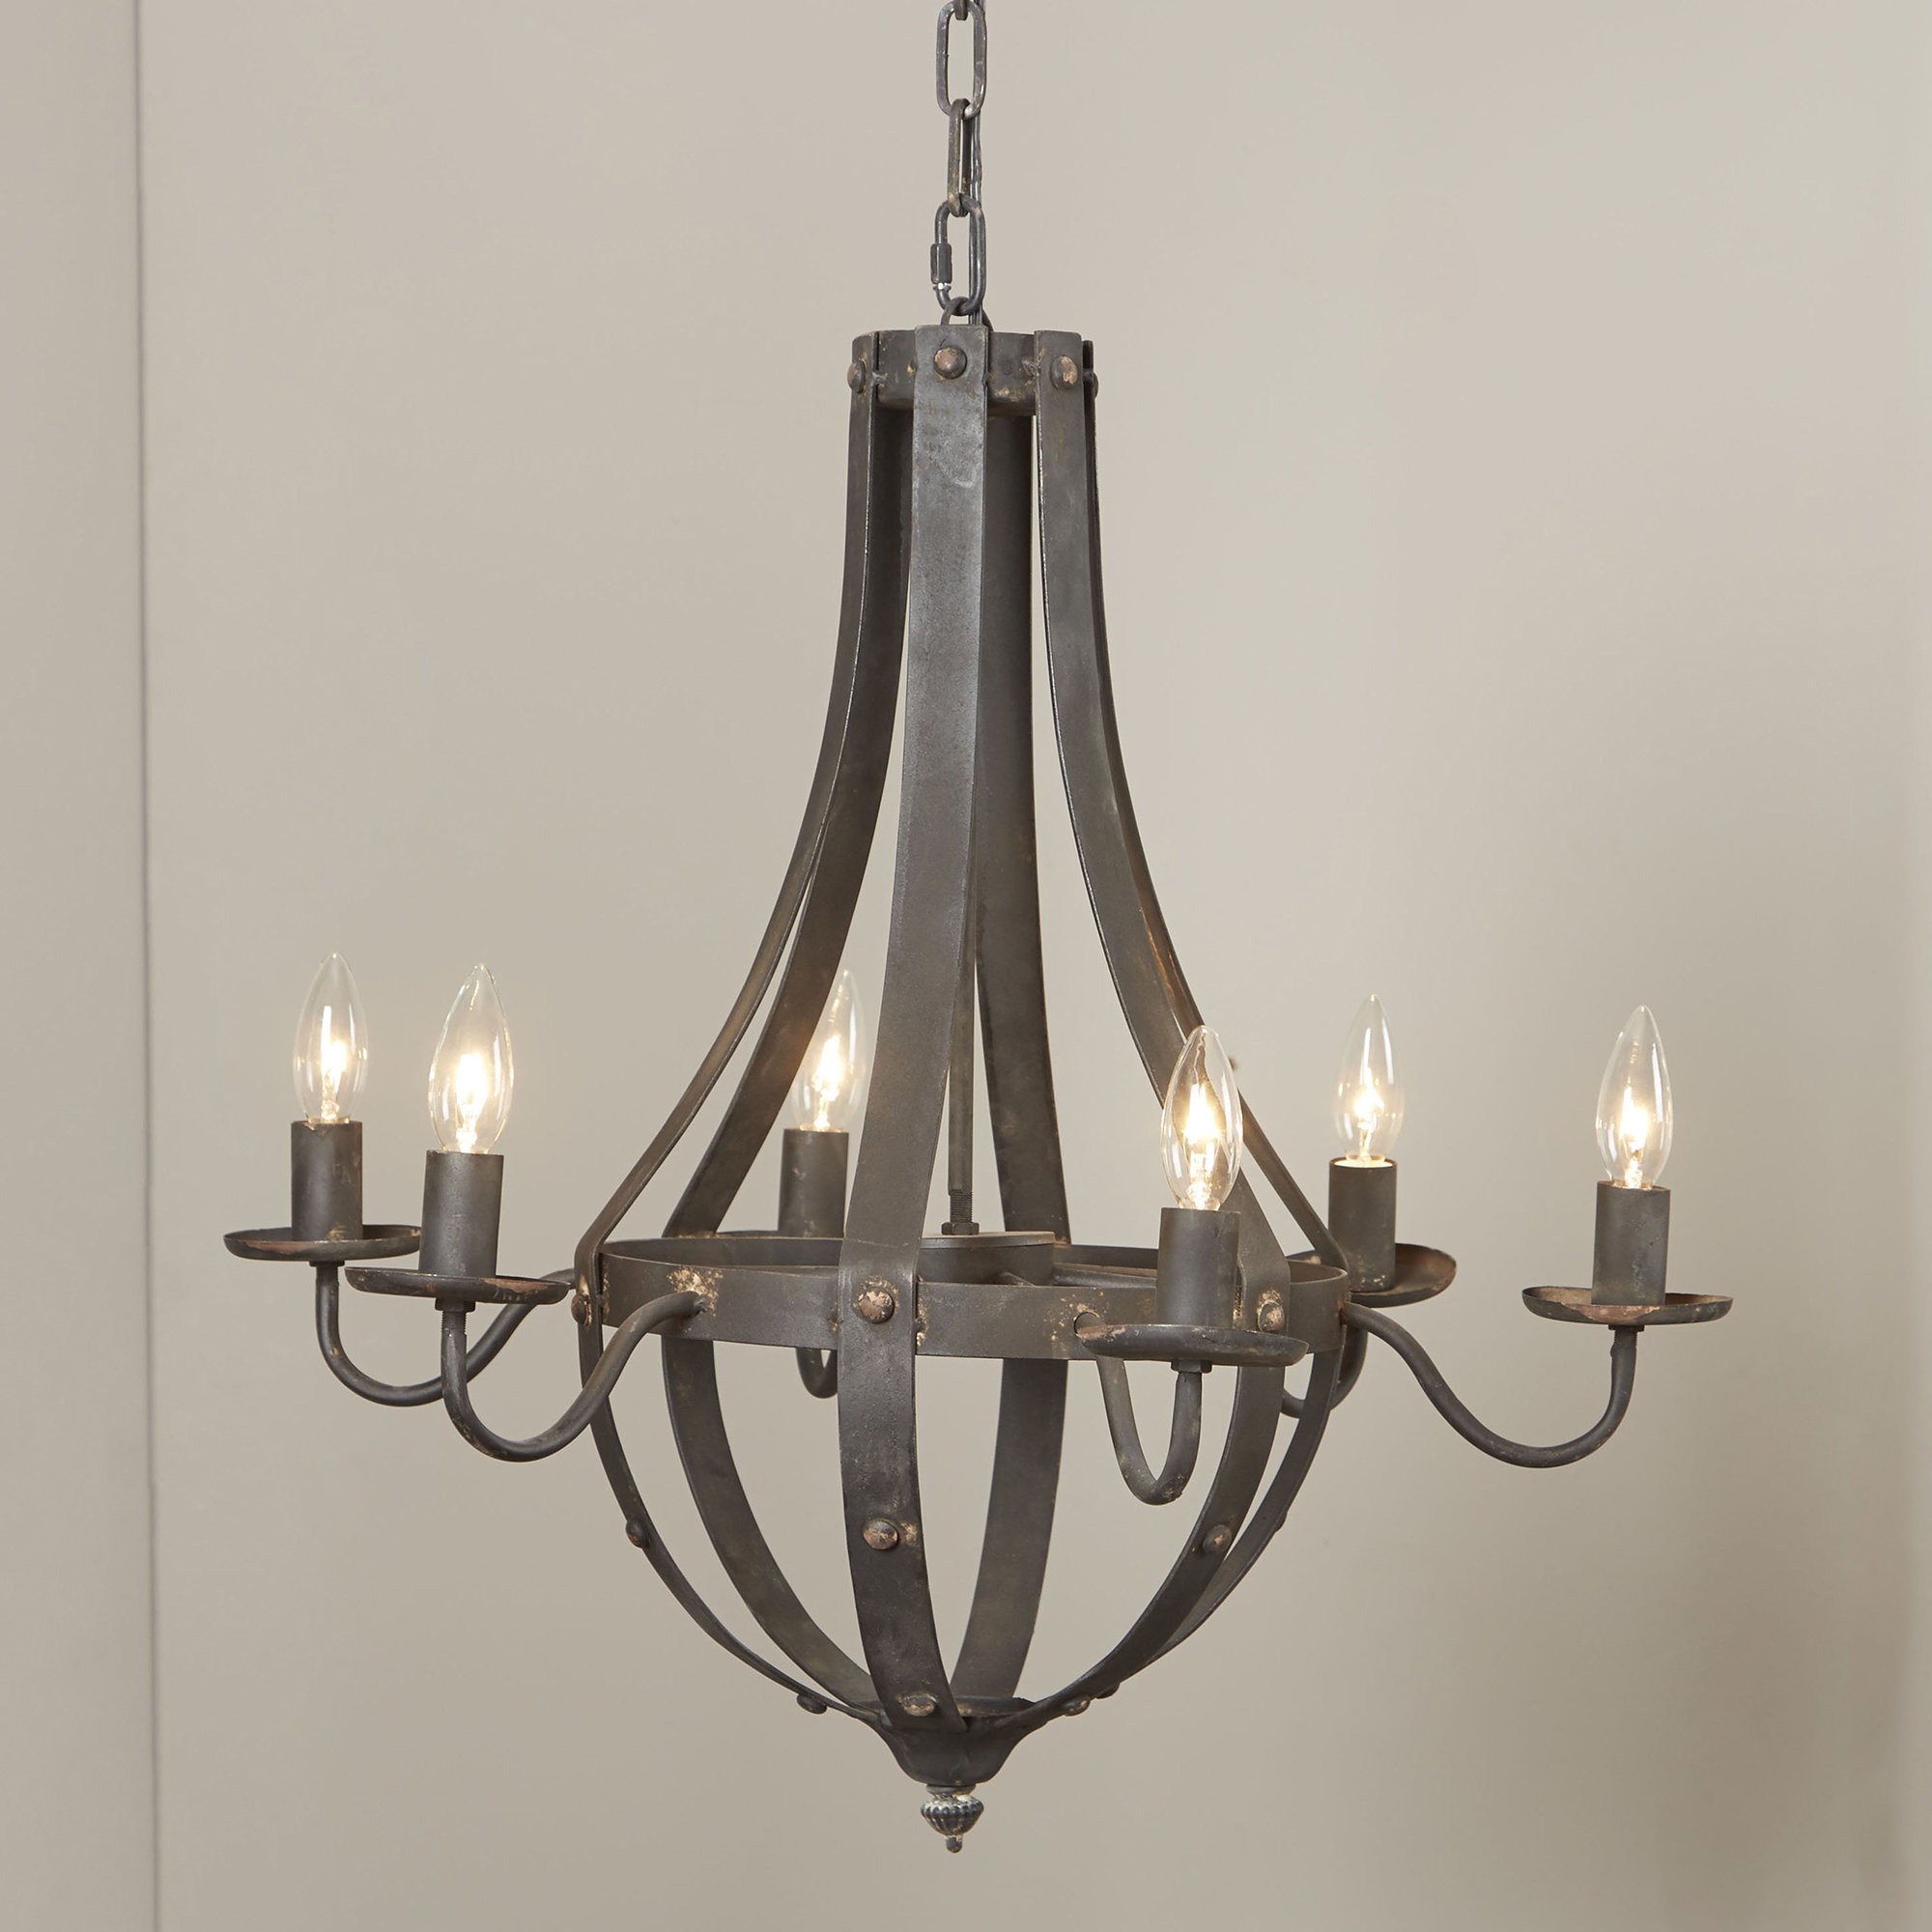 Shaylee 6 Light Candle Style Chandeliers Inside Most Up To Date Foulds 6 Light Empire Chandelier (View 12 of 20)